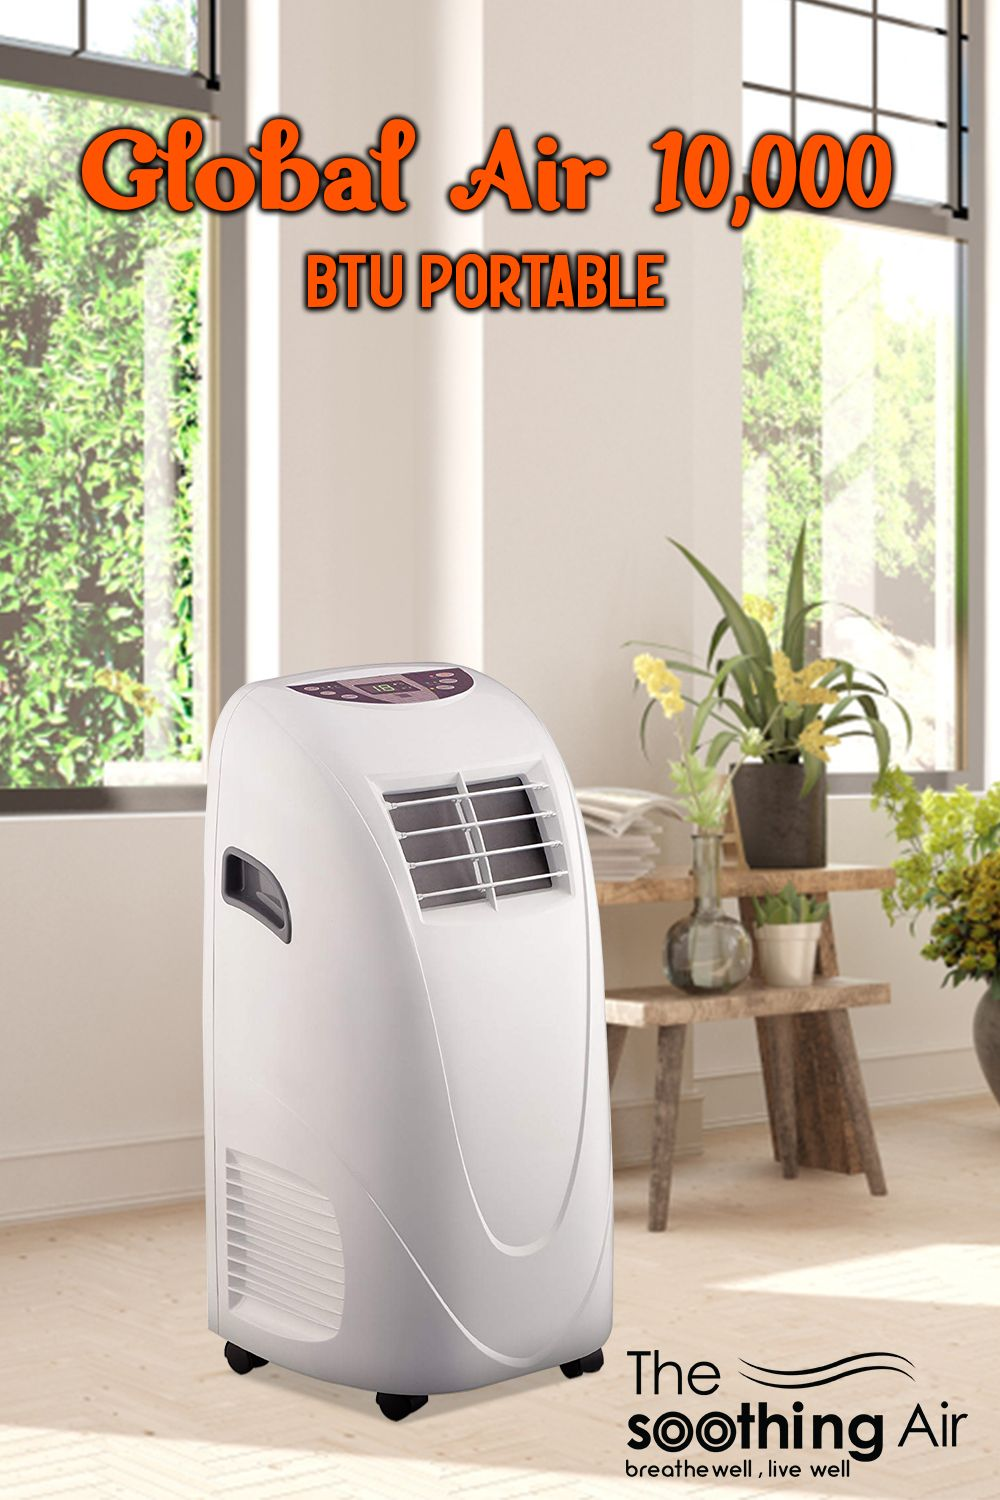 Top 10 Portable Air Conditioners April 2020 Reviews Buyers Guide In 2020 Portable Air Conditioner Portable Air Conditioner Heater Portable Air Conditioners